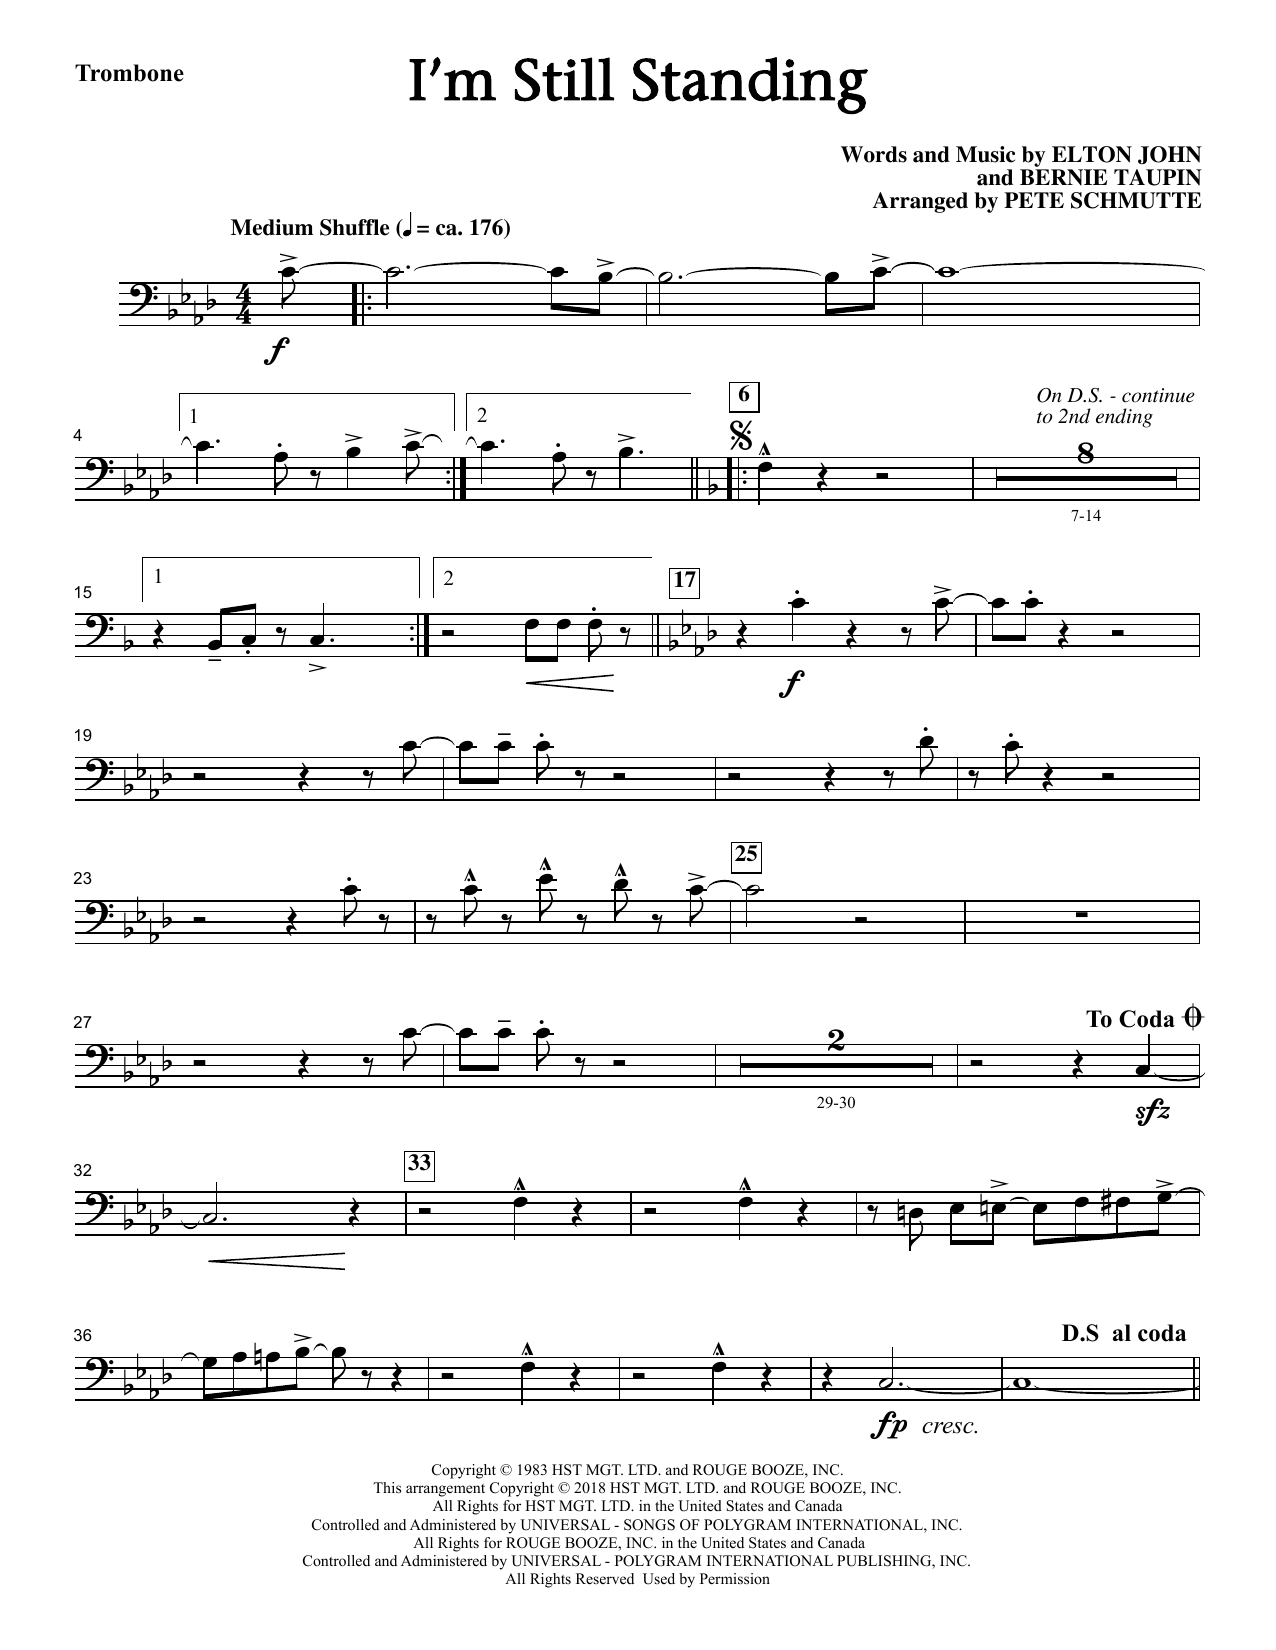 Elton John I'm Still Standing (arr. Pete Schmutte) - Trombone sheet music notes and chords. Download Printable PDF.